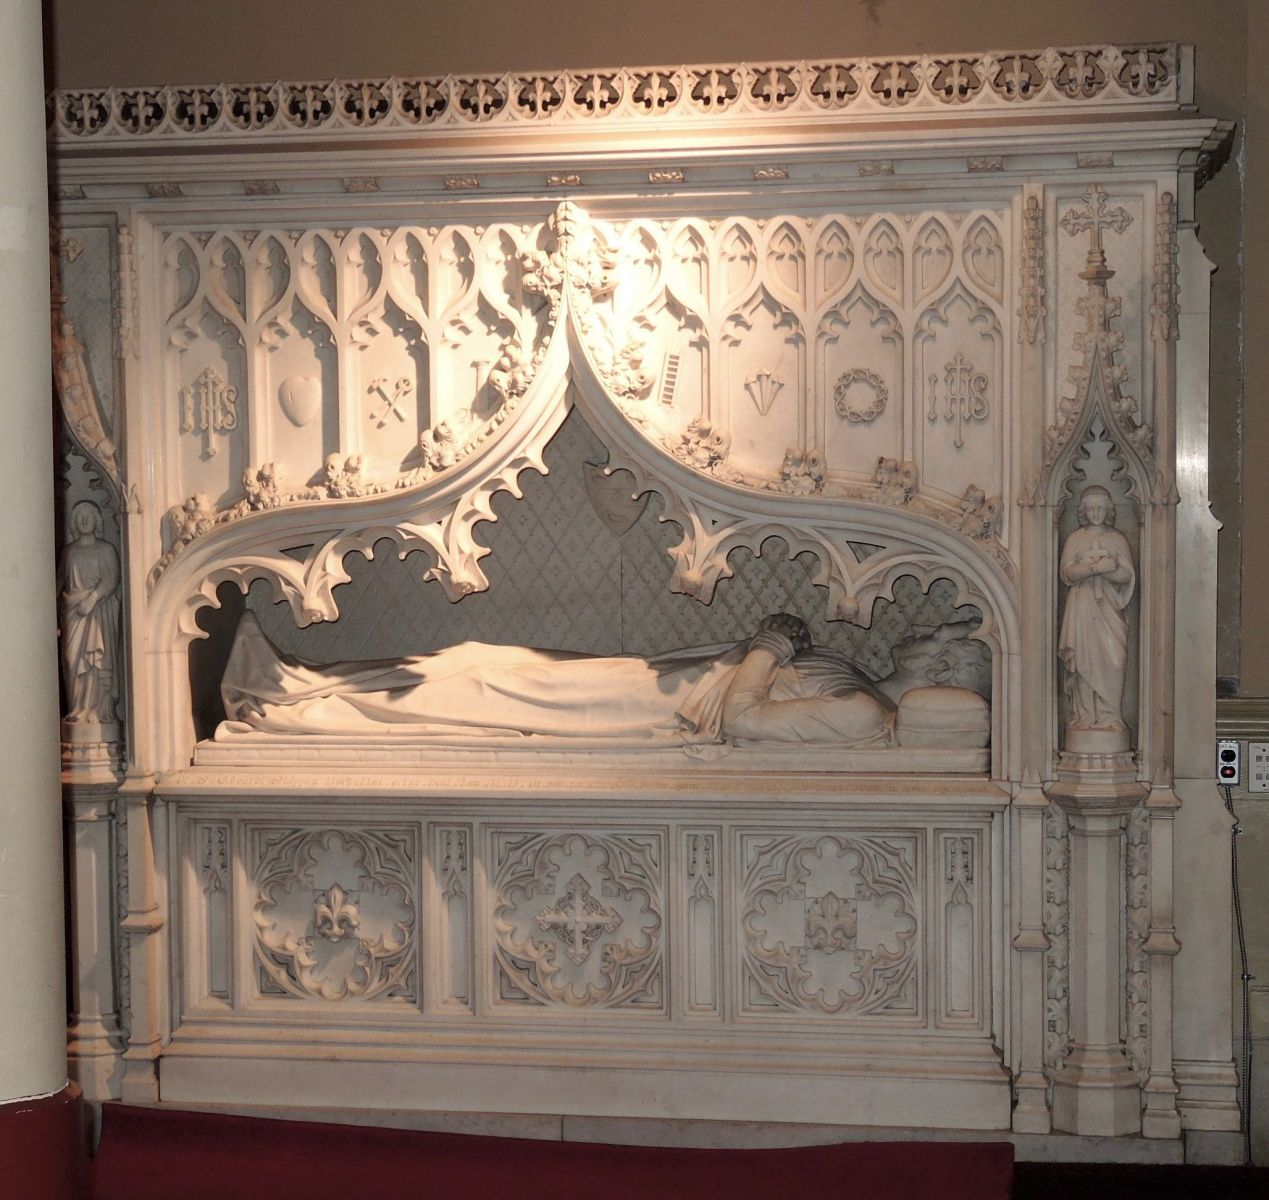 Fig 1. Frank Wills (architect) and Henry Kirke Brown (sculptor), canopy tomb of Edward Shippen Burd, 1849-1860, St. Stephen's Episcopal Church, Philadelphia